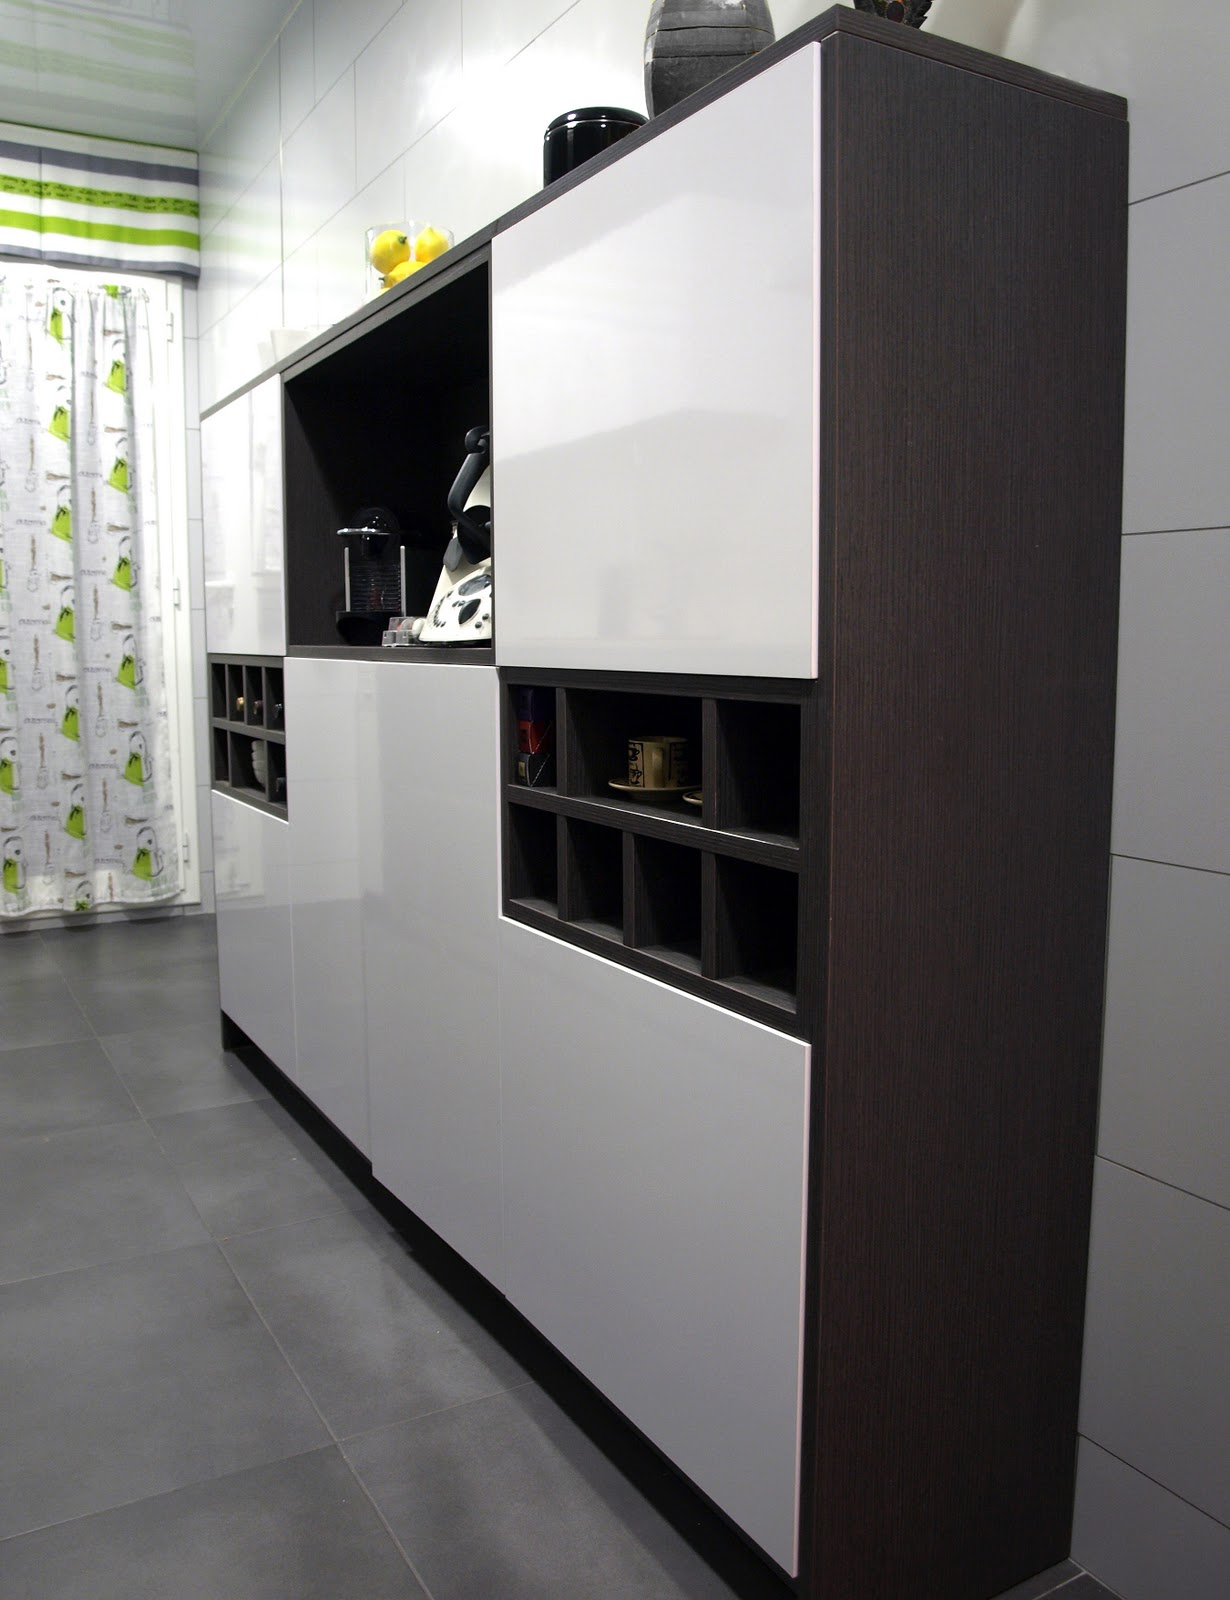 Mueble Auxiliar Barcelona Espai Decuina Ripollet Barcelona Proyecto Cocina Lineal